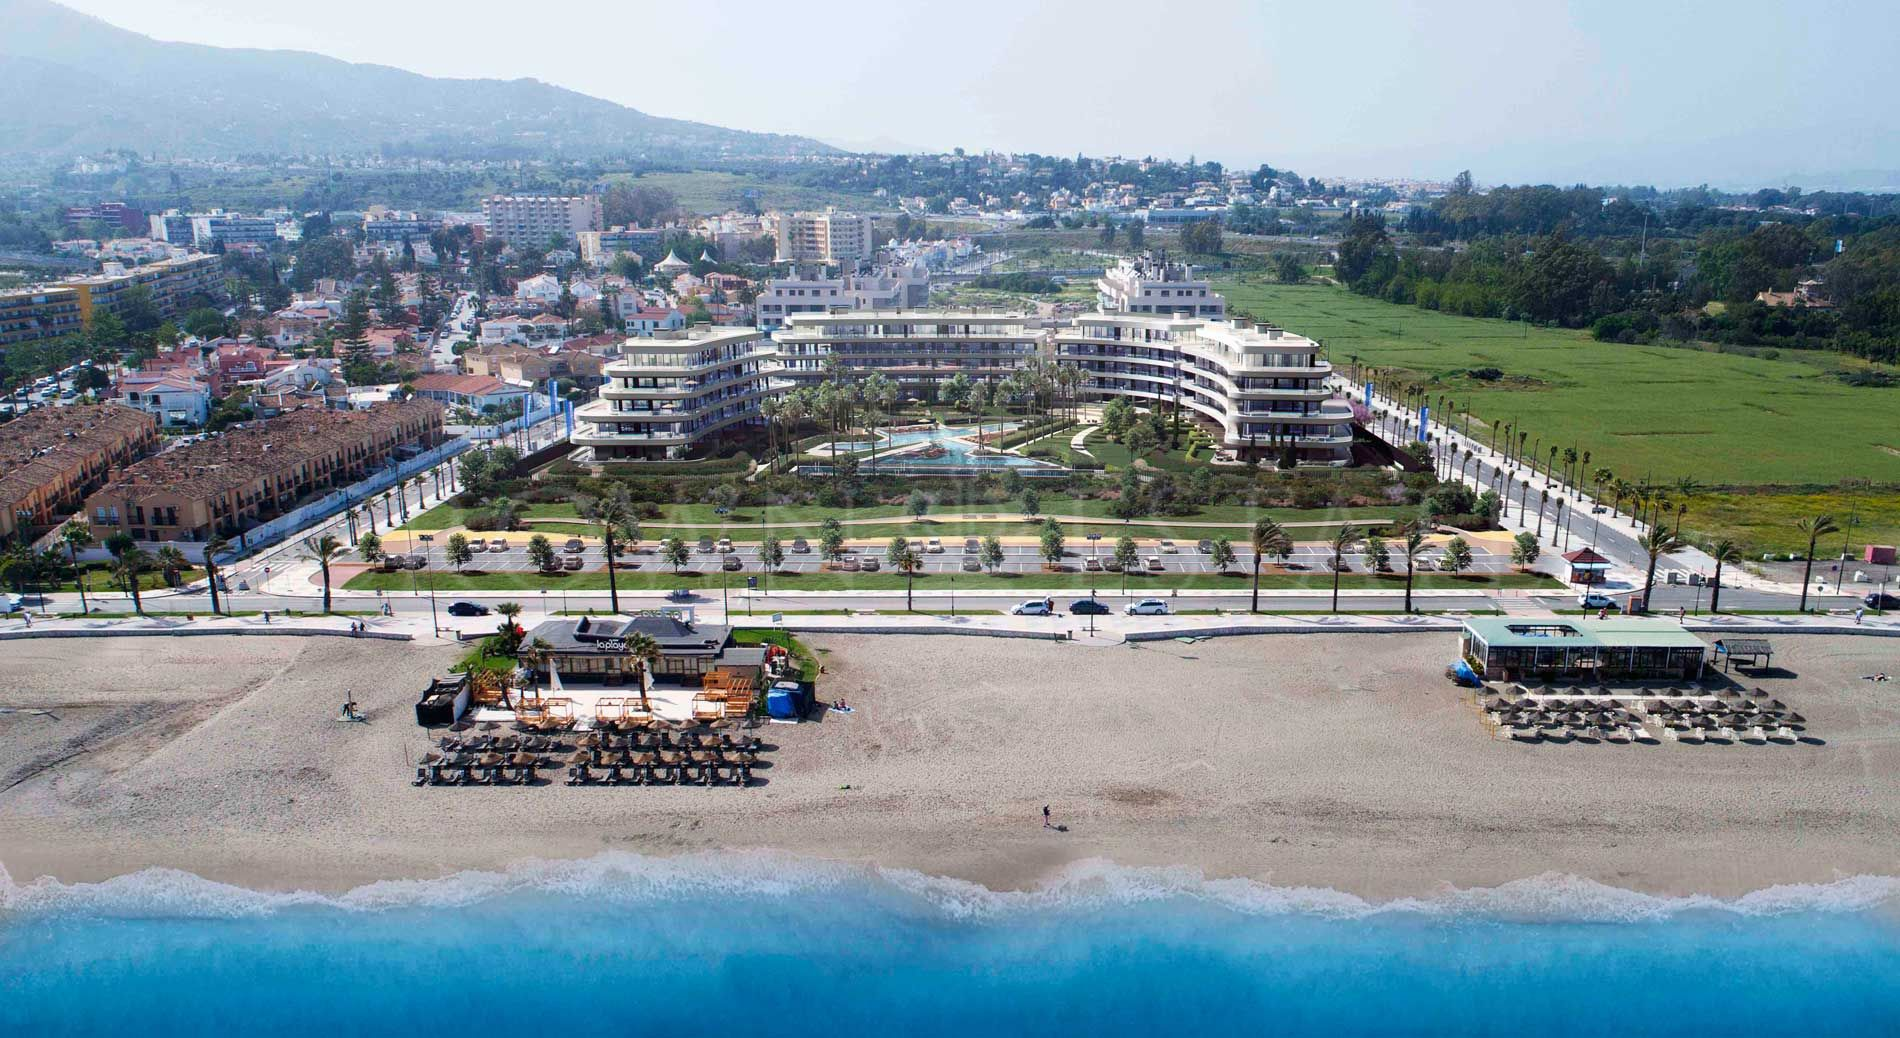 104 apartments of 1,2,3 and 4 bedrooms located on the beachfront. Just at 800metres from the Parador Málaga Golf and 10 minutes far from Málaga citycentre.